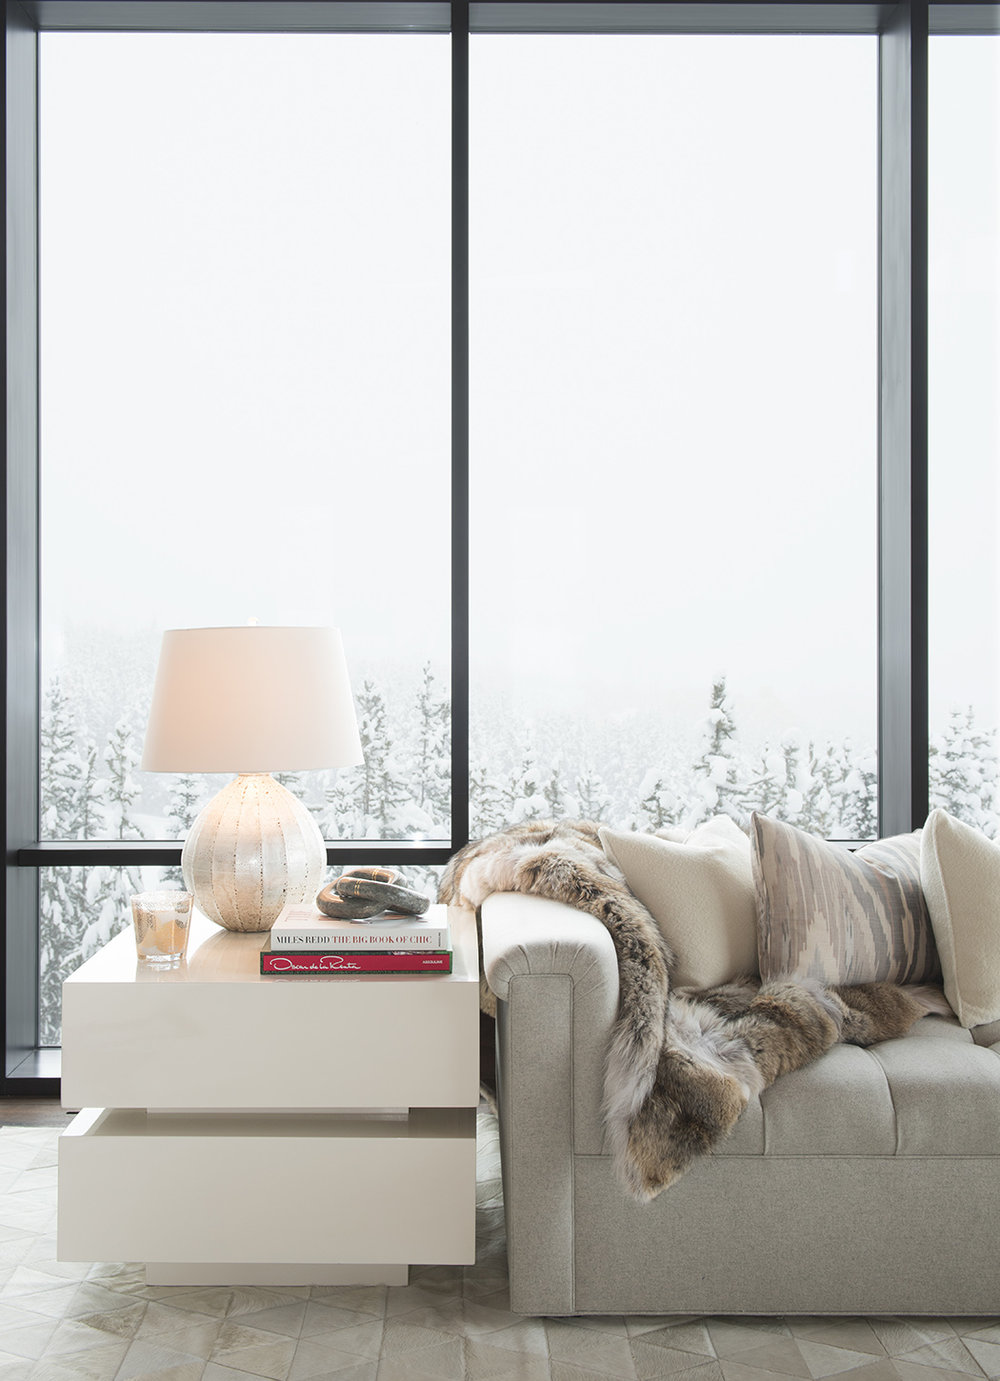 Usually cloudy skies are a bummer on shoot days, but not this day!  The white outside really added to the comfy and bright furnishings inside!  Architect -  Reid Smith Architects , Interior Design -  Anna Burke Interiors